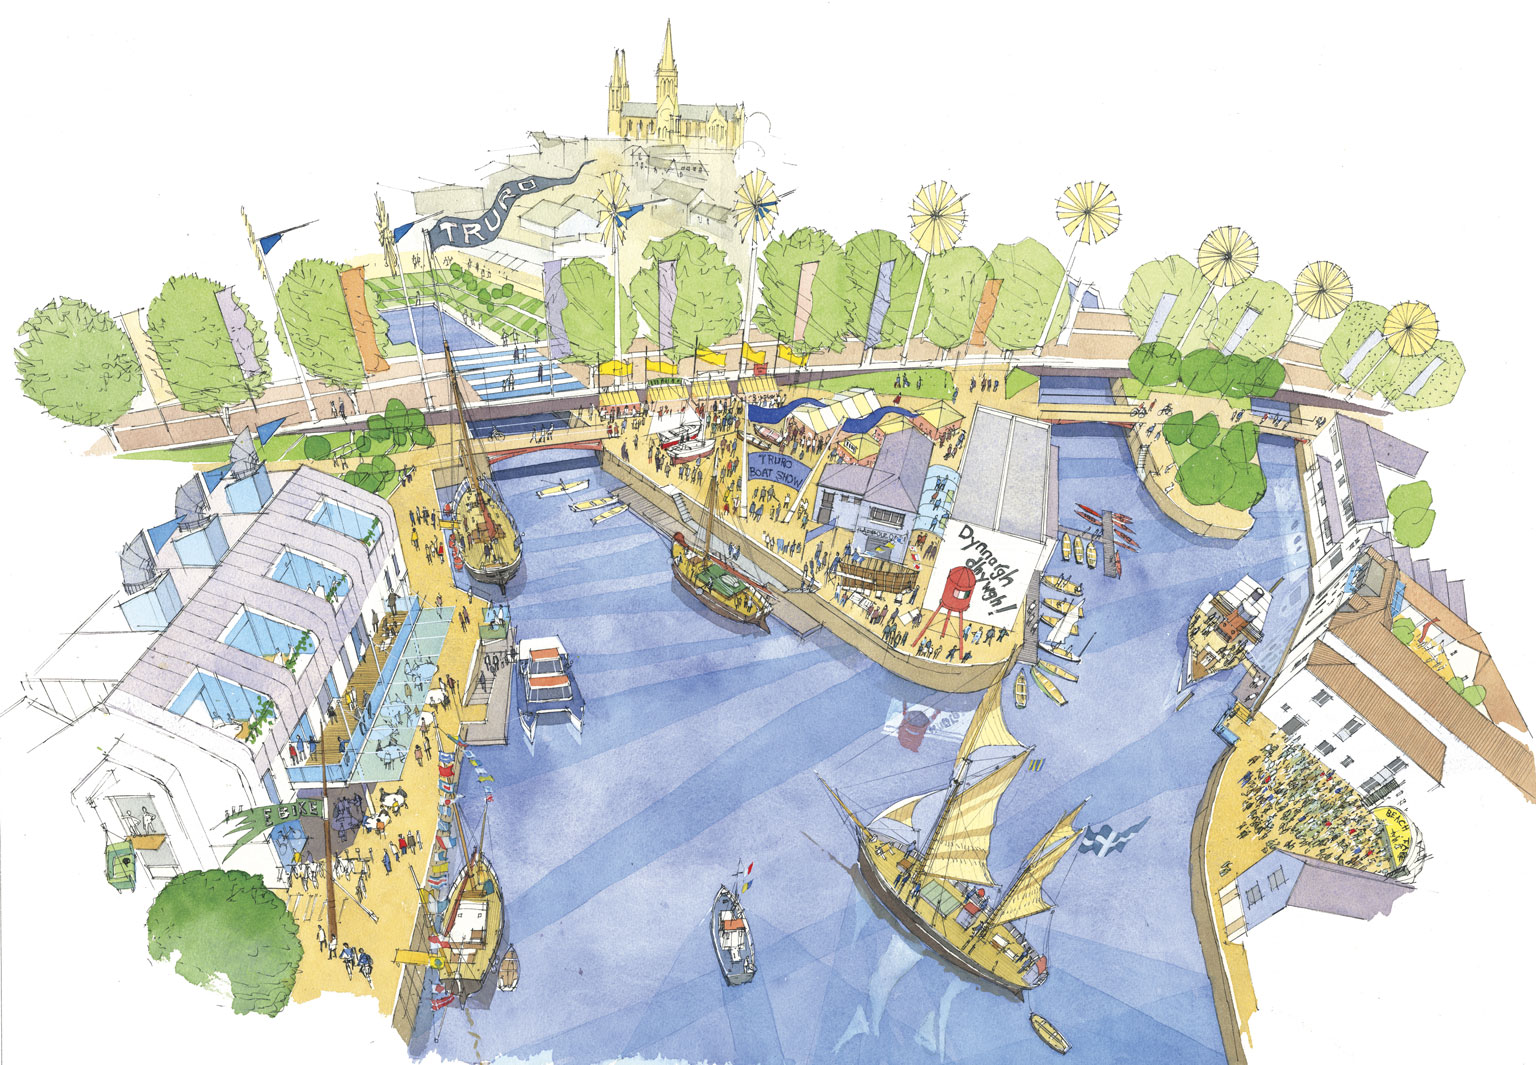 Truro Quays Harbour village potential project diagram.